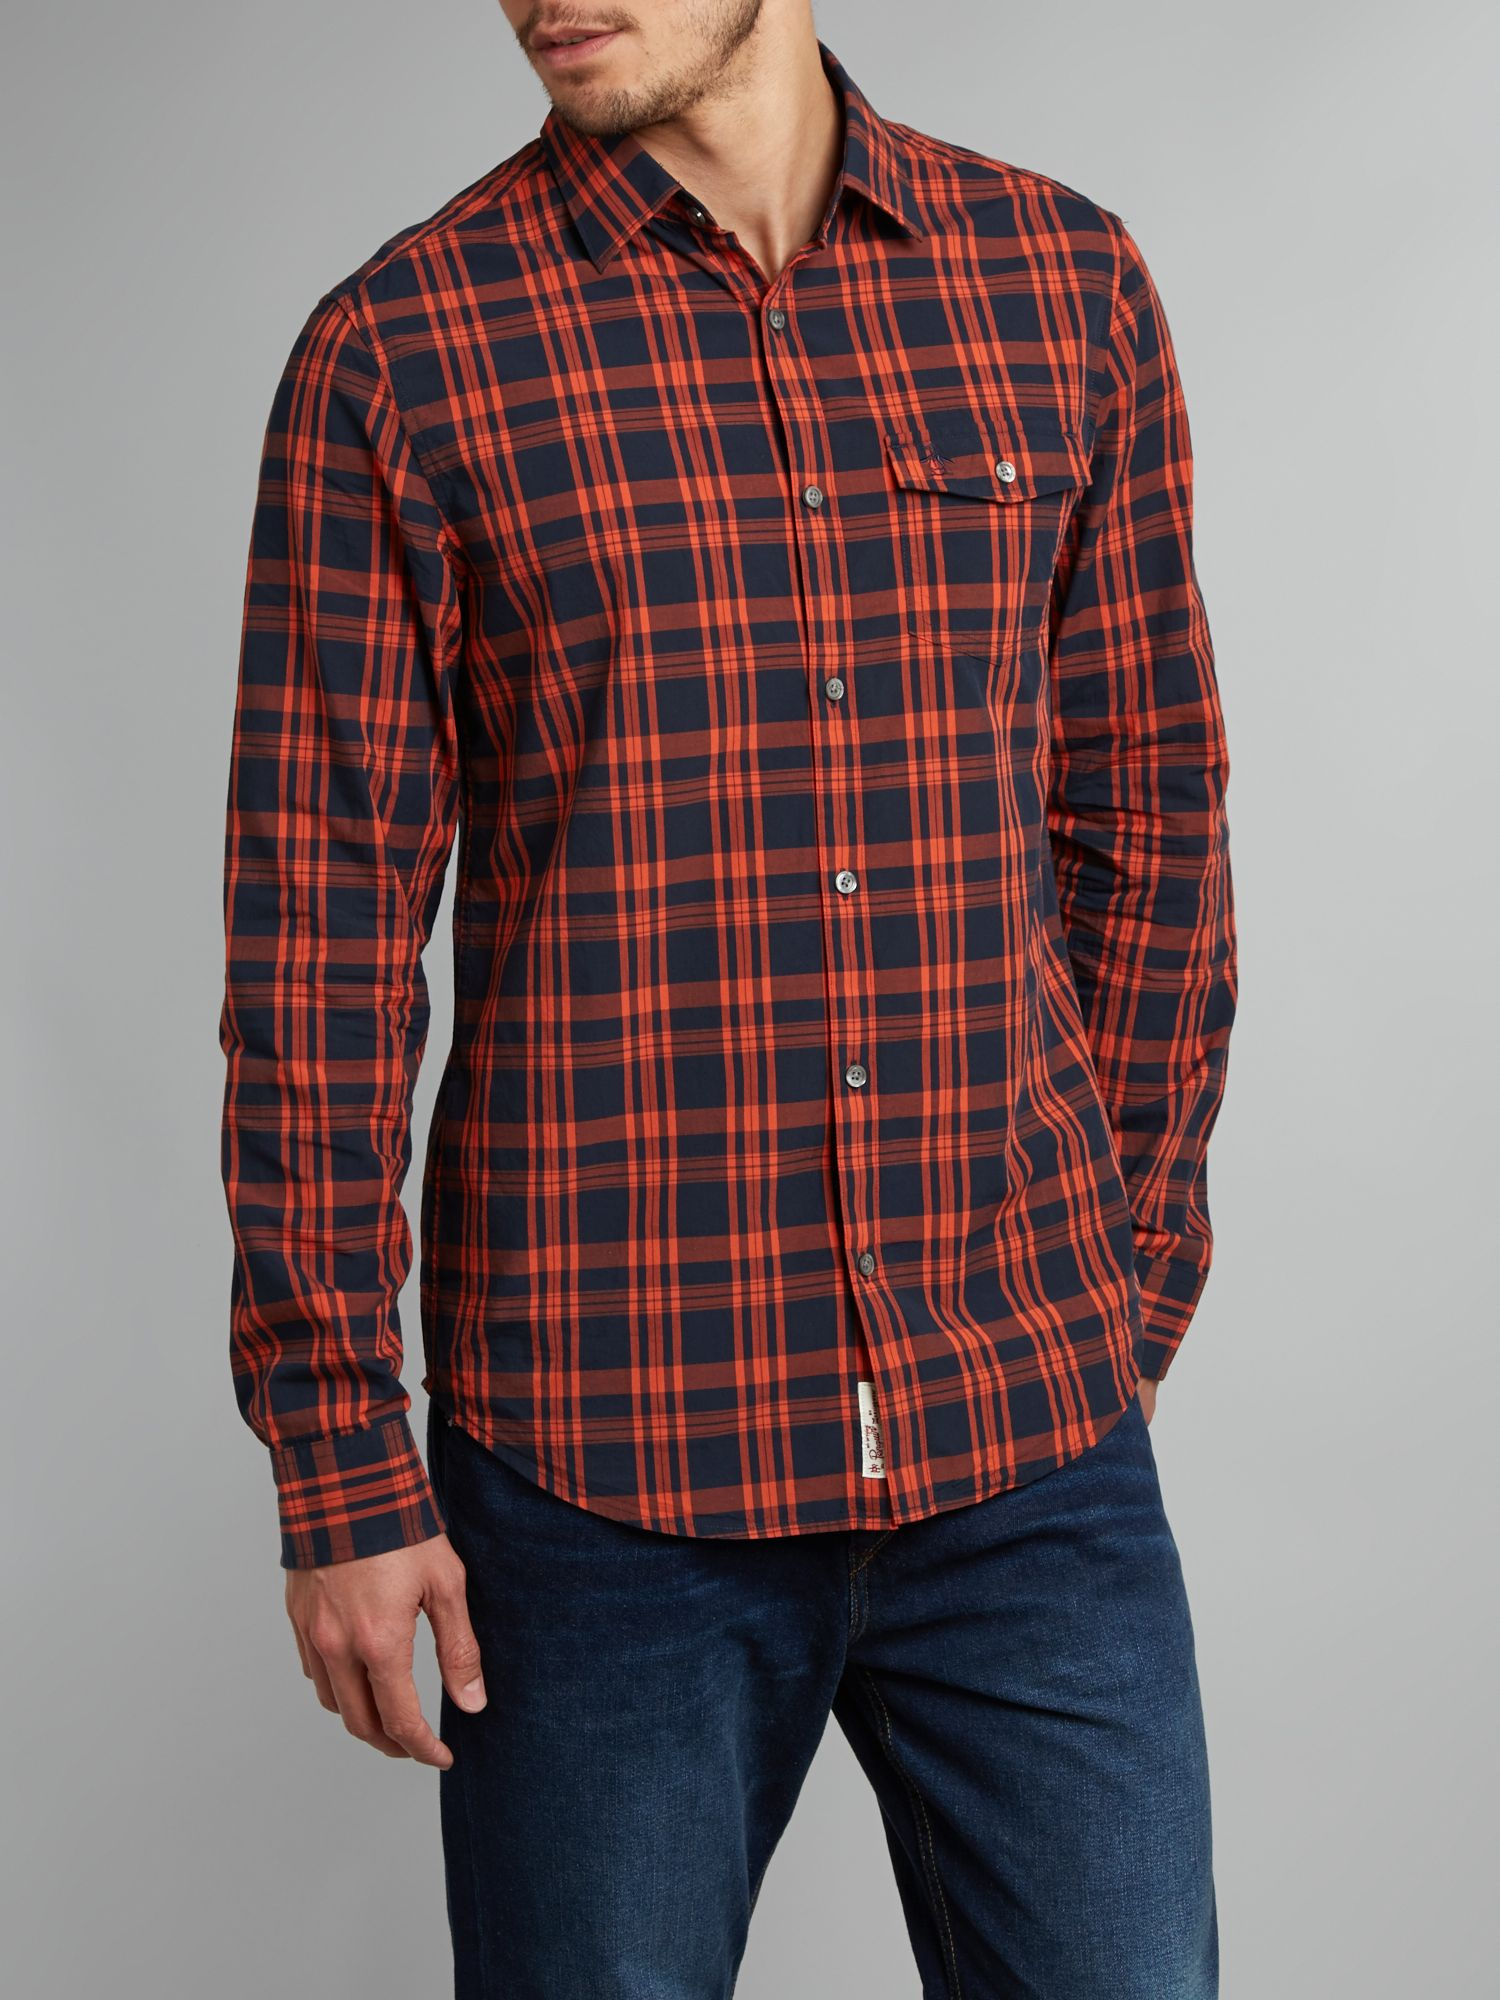 Two colour plaid shirt